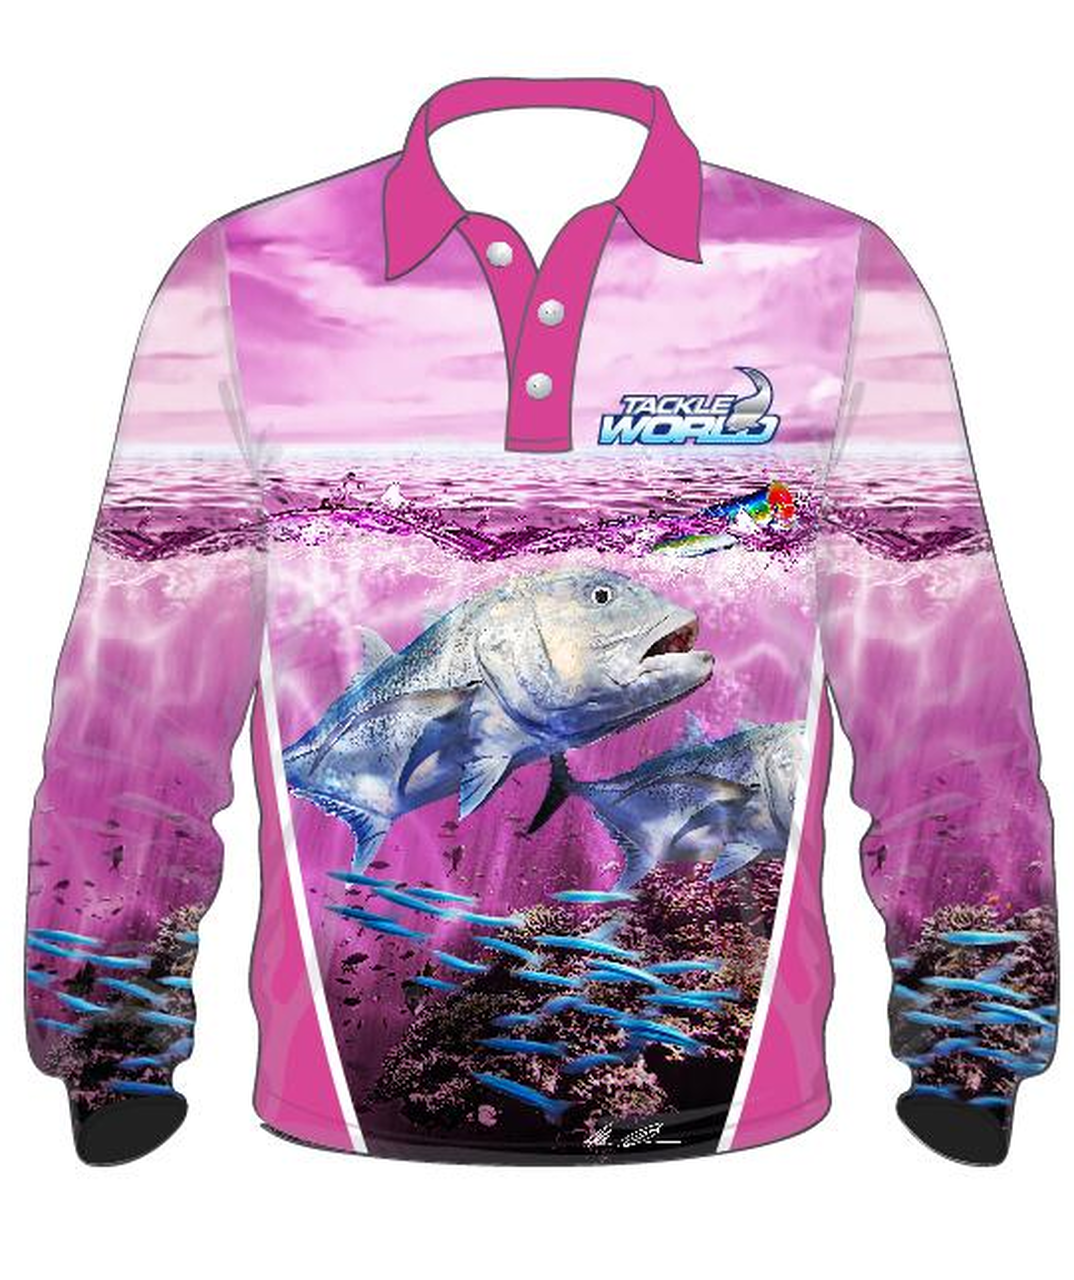 Tackle World GT Girls Long Sleeve Fishing Shirt Jersey